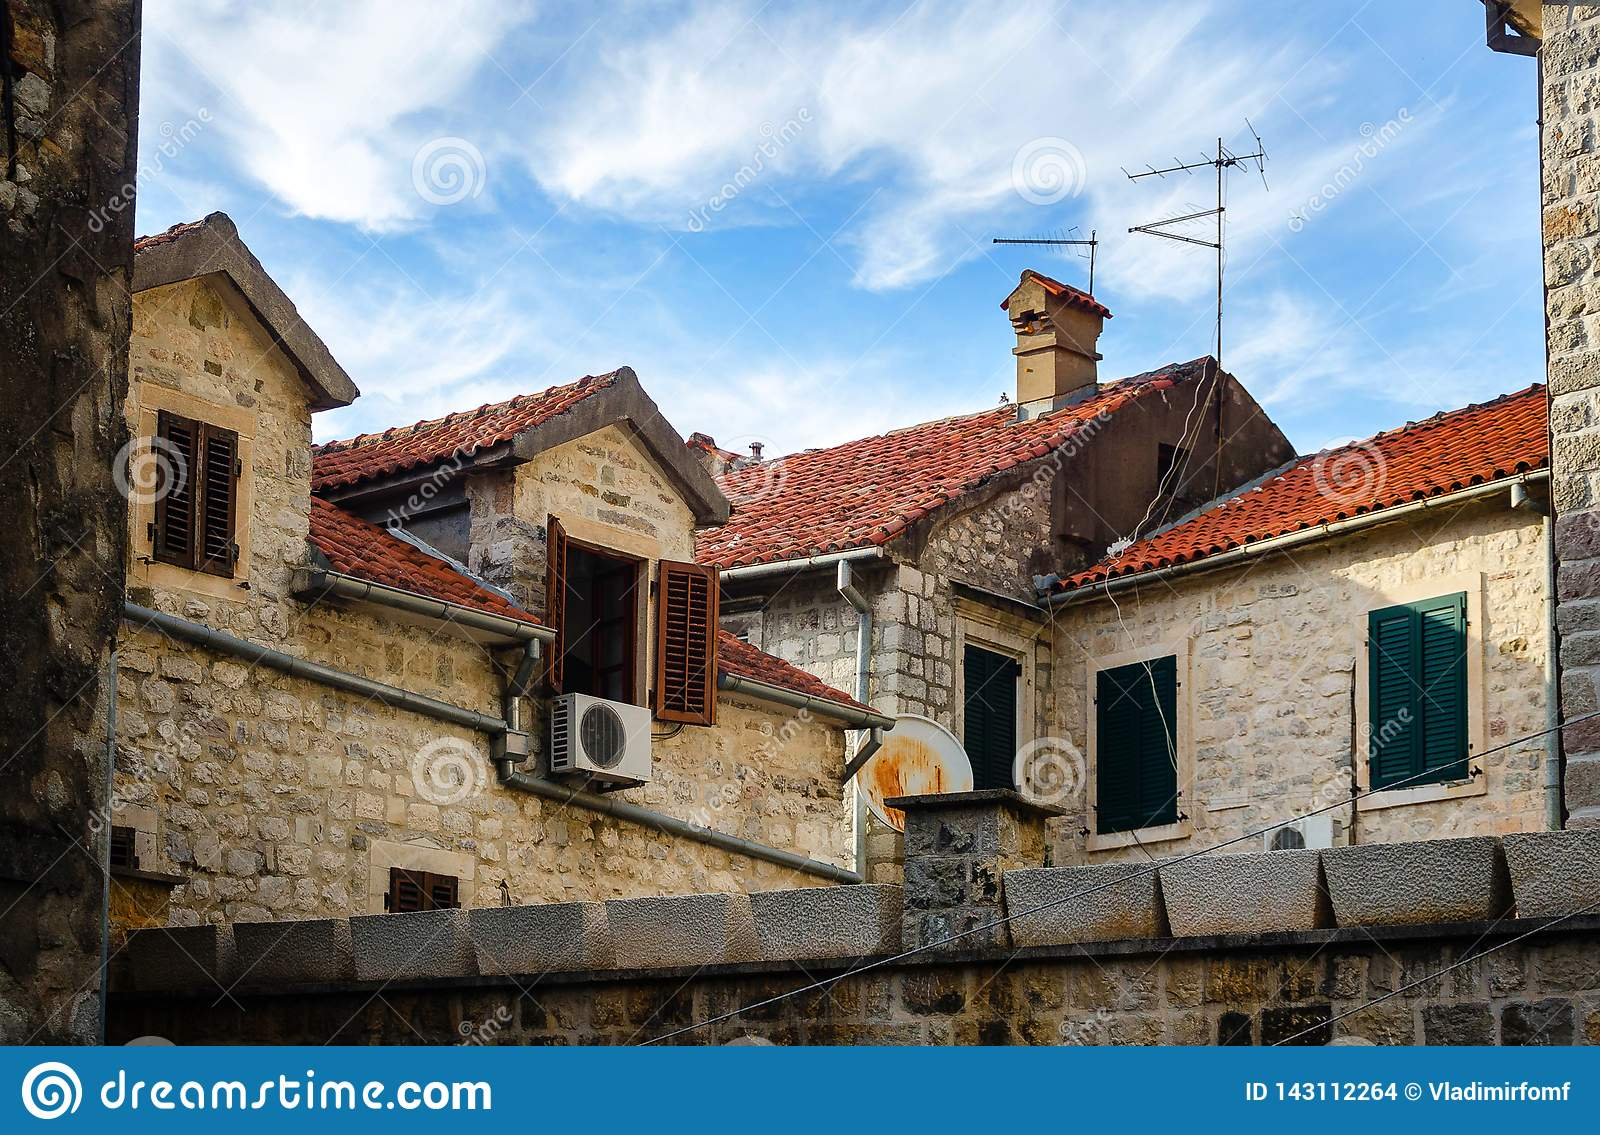 Red tiles roofs of Kotor, Montenegro